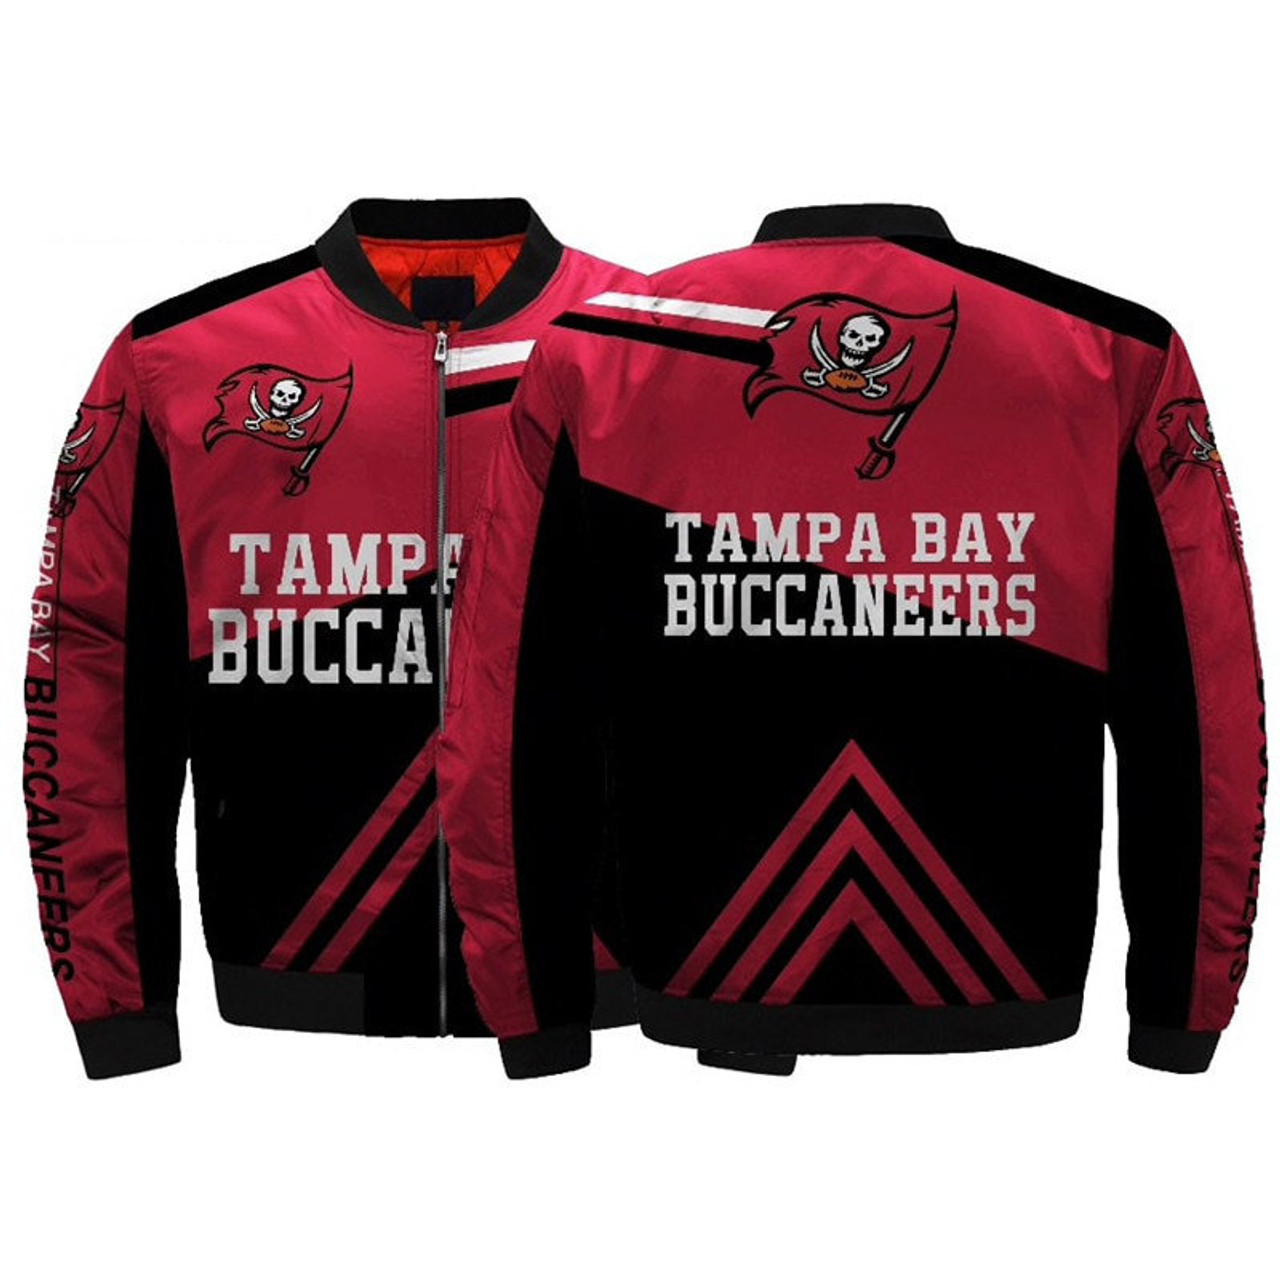 13e974e1 **(OFFICIAL-N.F.L.TAMPA-BAY-BUCCANEERS-JACKETS/CLASSIC-BUCCANEERS-TEAM-COLORS  & OFFICIAL-BUCCANEERS-LOGOS-BOMBER/FLIGHT-JACKET,NICE-DETAILED-CUSTOM-3D...